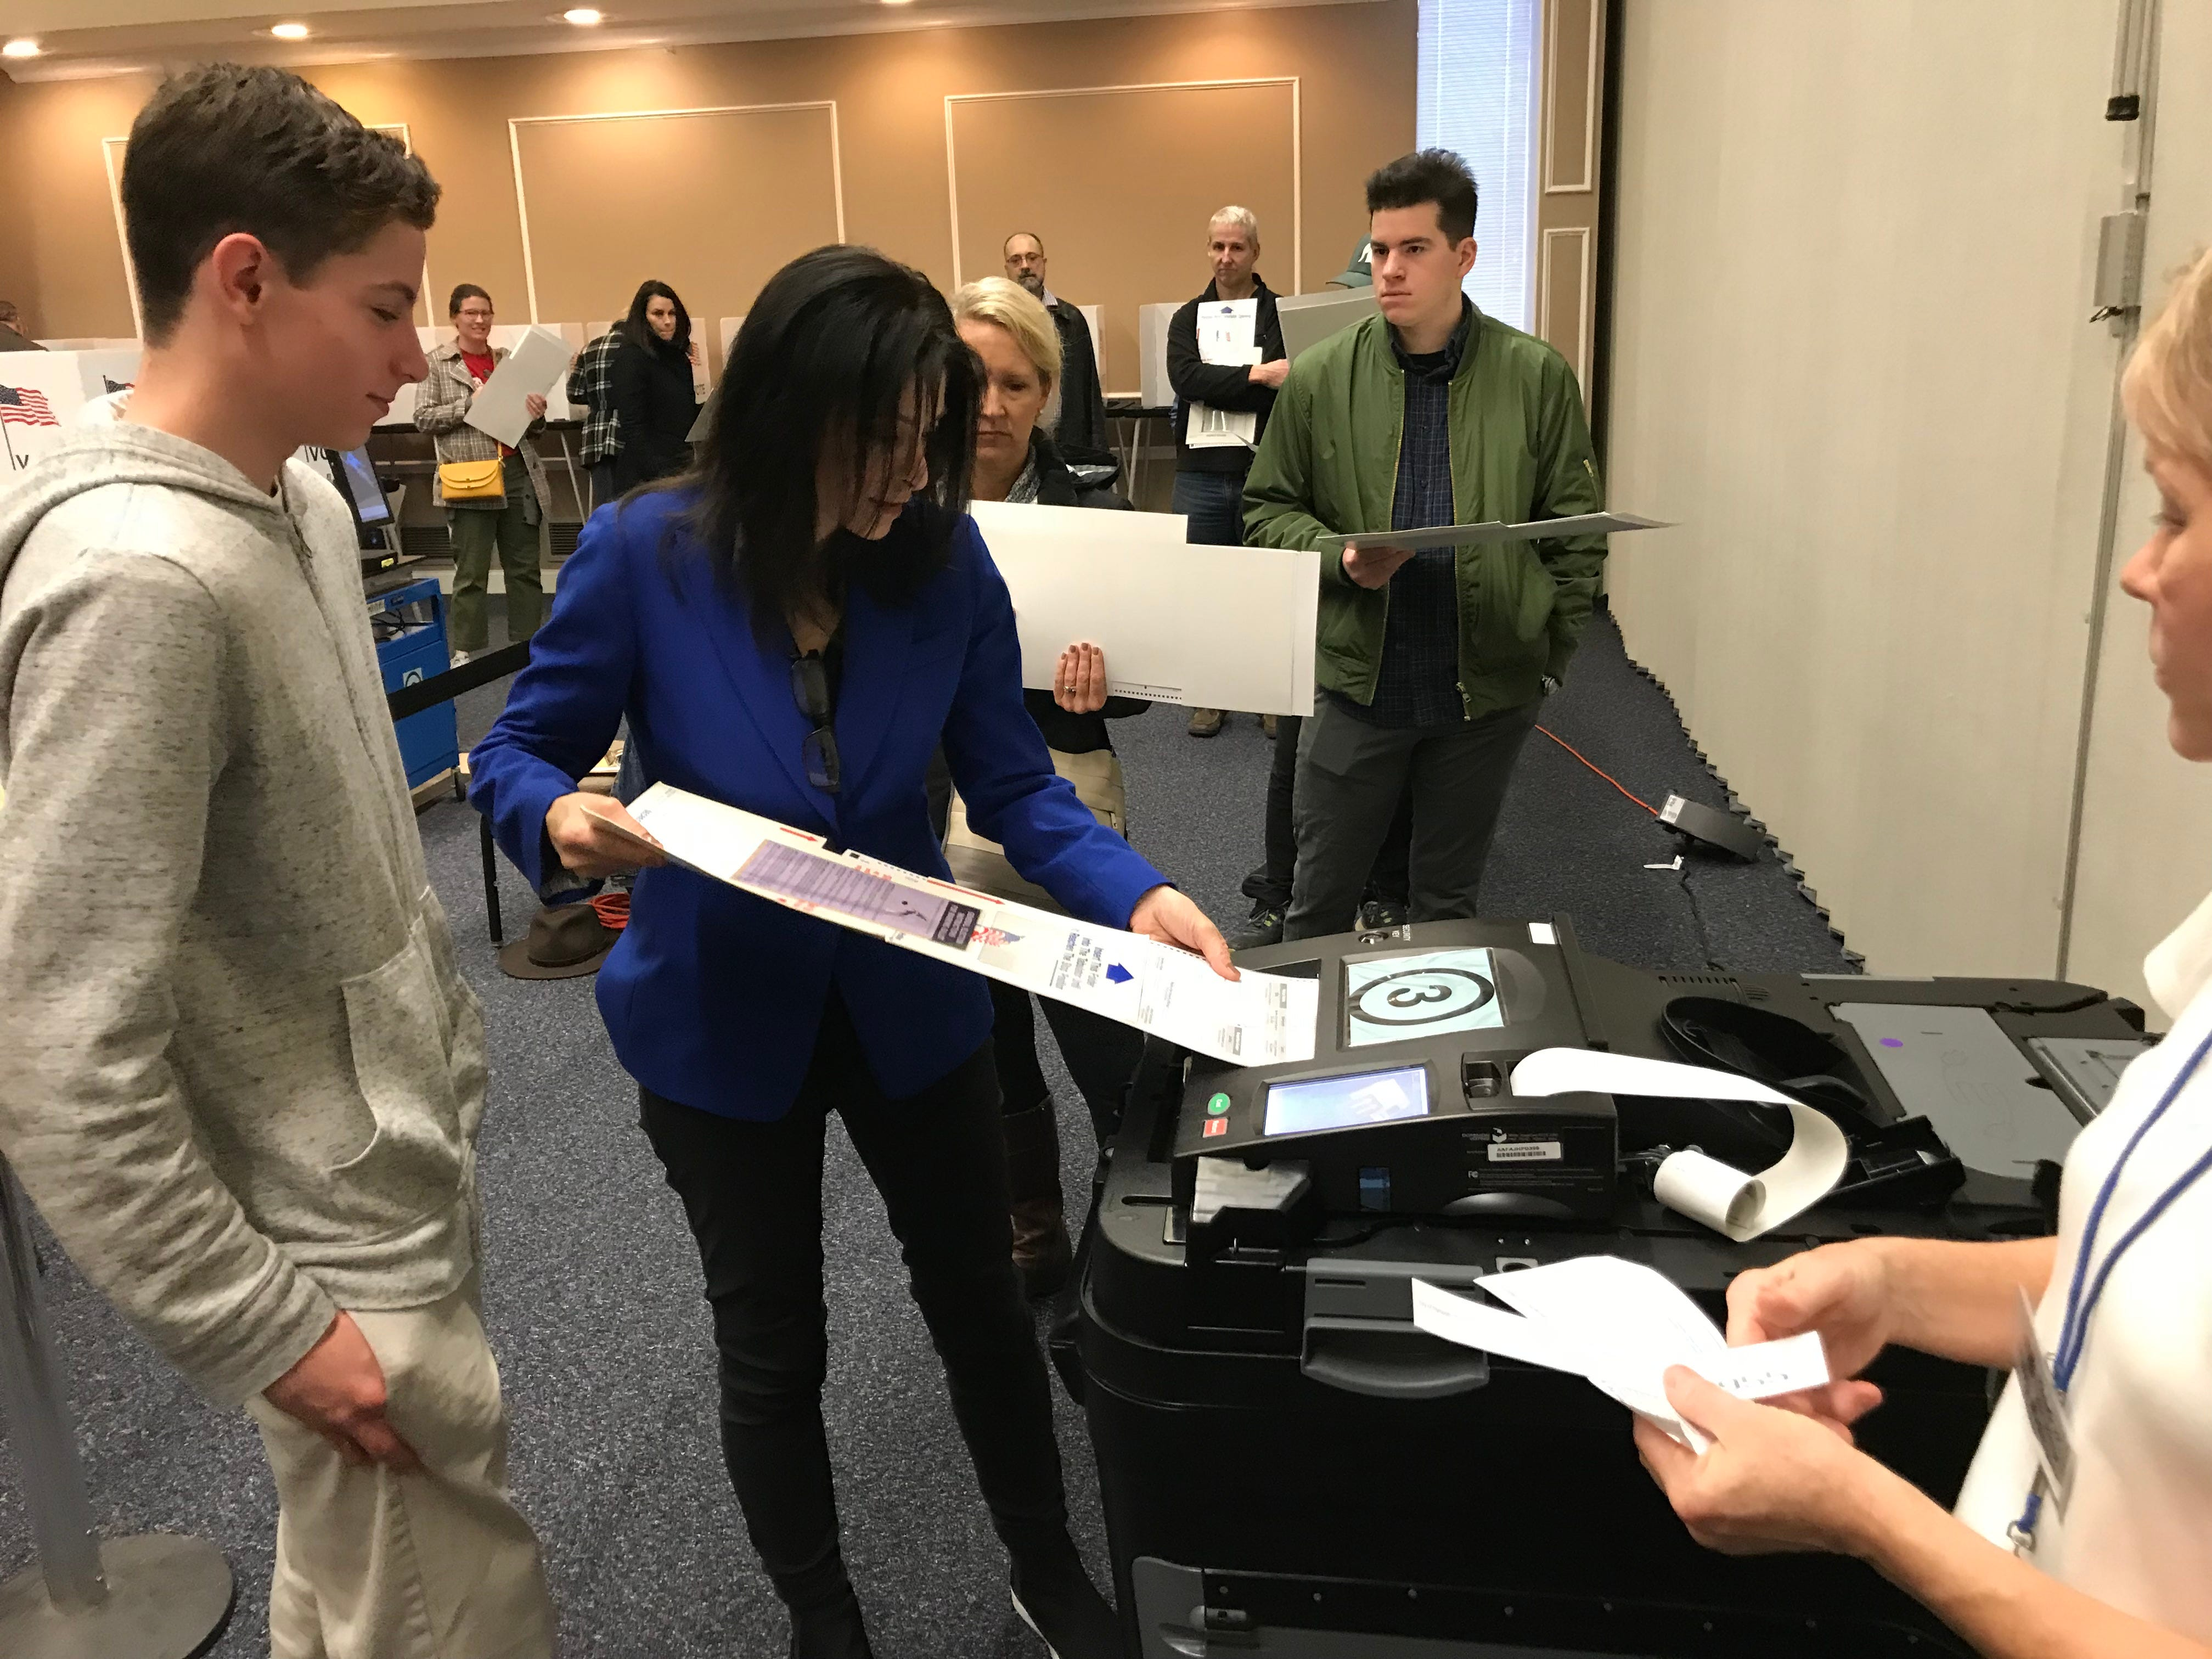 Michigan Attorney General candidate Dana Nessel casts her ballot at the Plymouth Cultural Center with a little help from her son, Zach.